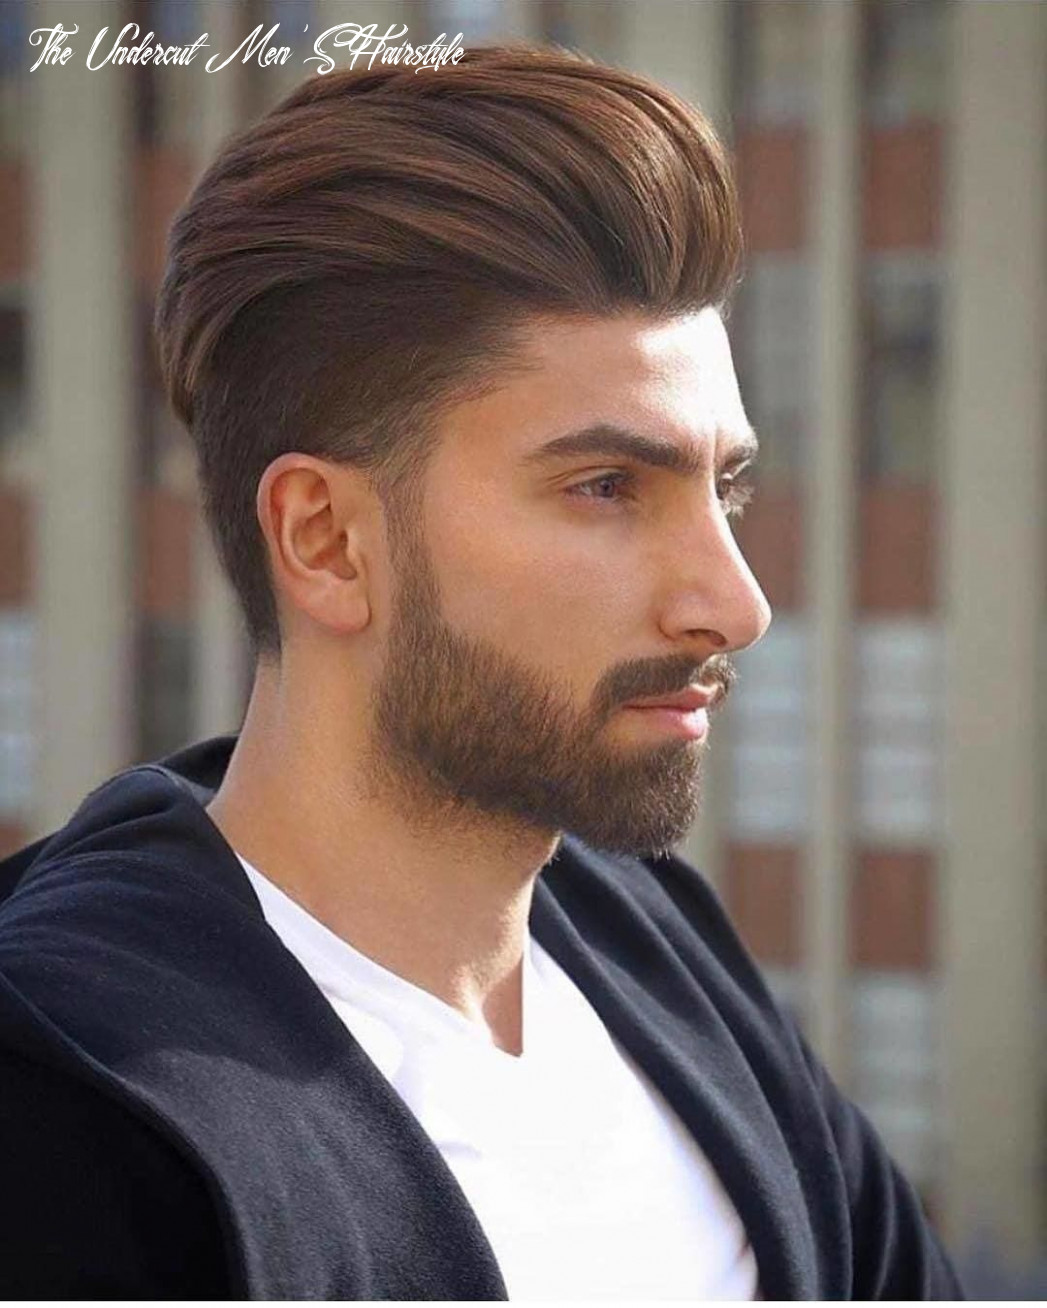 8 cool undercut hairstyles for men | undercut hairstyles, mens